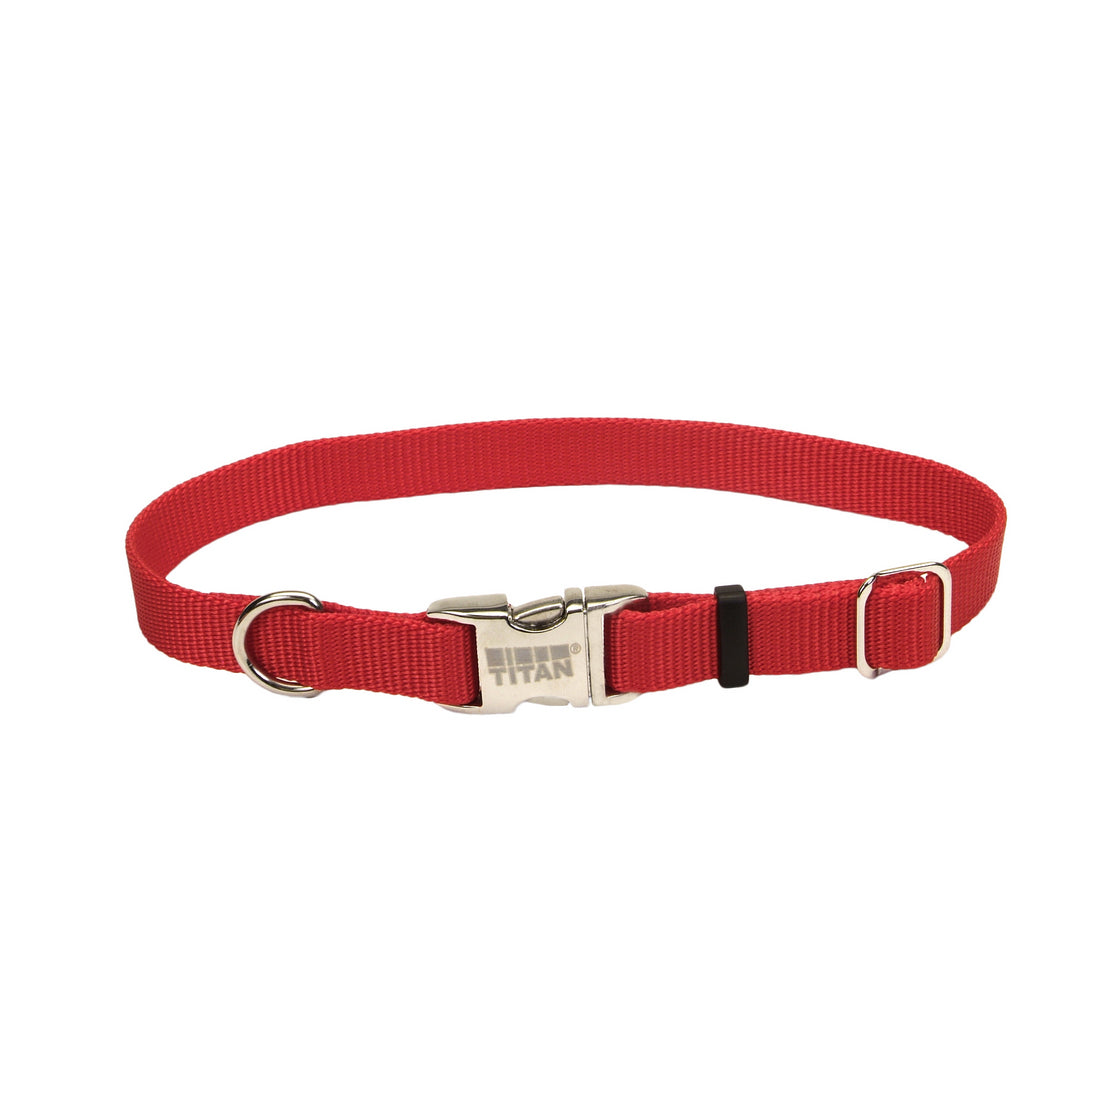 Coastal Adjustable Nylon Collar with Metal Buckle Large Red